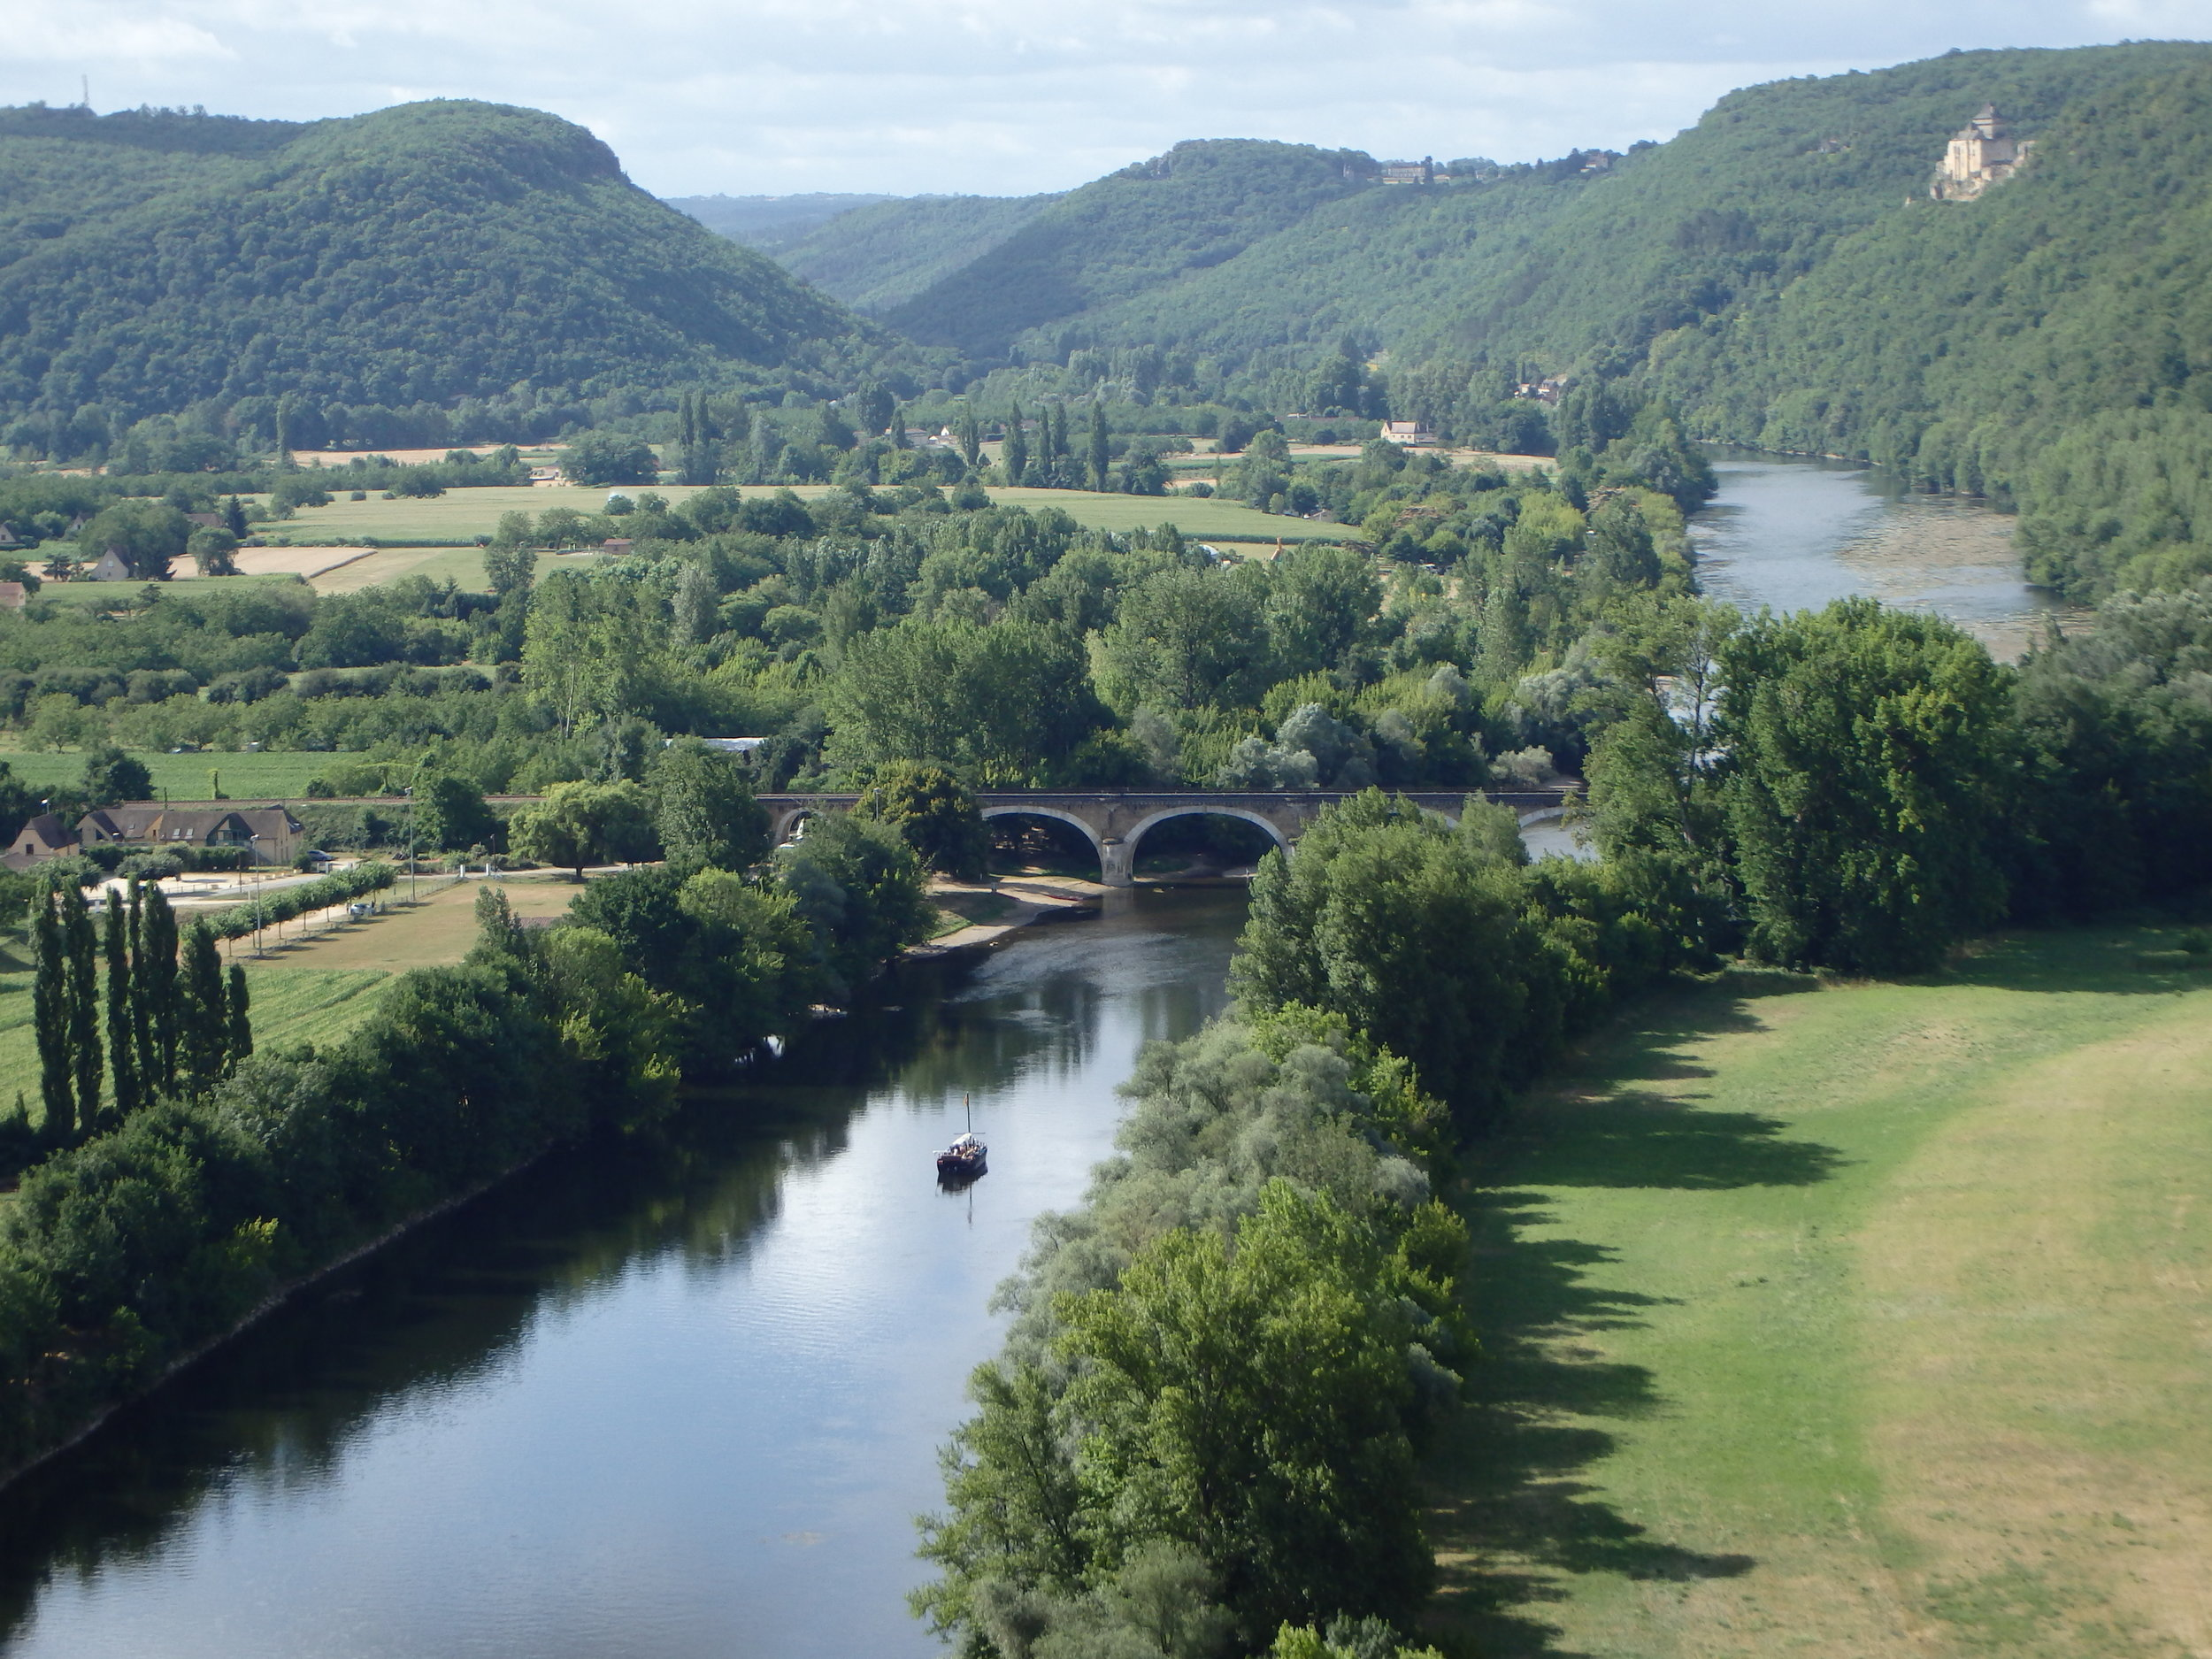 Copy of Dordogne River from the Château de Beynac